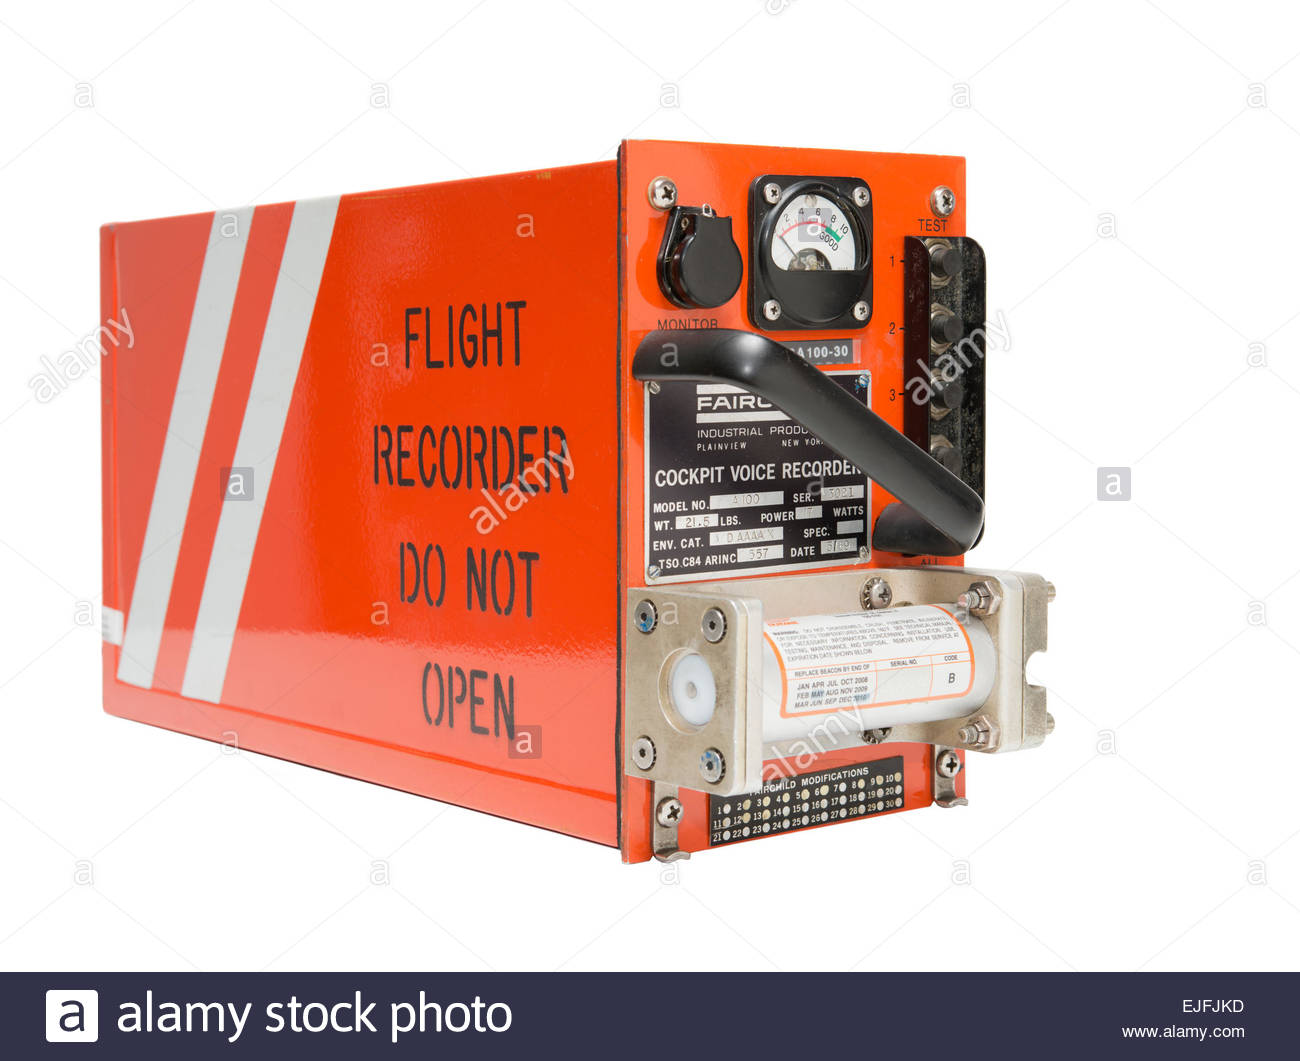 Flight Data Recorder Cockpit Voice Recorder Fairchild A100 the type used on a Boeing 747 Jumbo Jet Airliner dropped - Stock Image